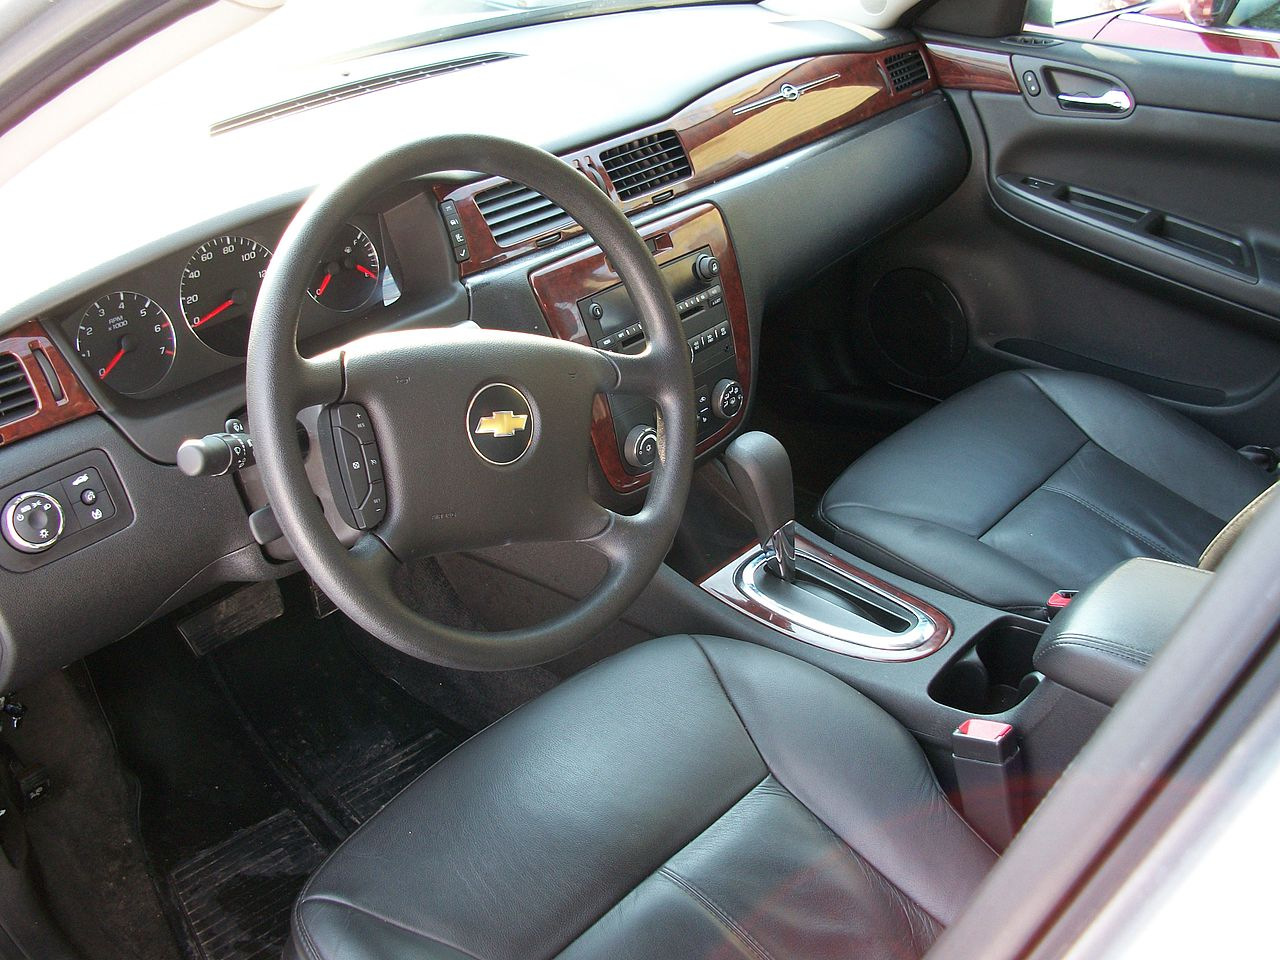 hight resolution of file 09 impala interior jpg